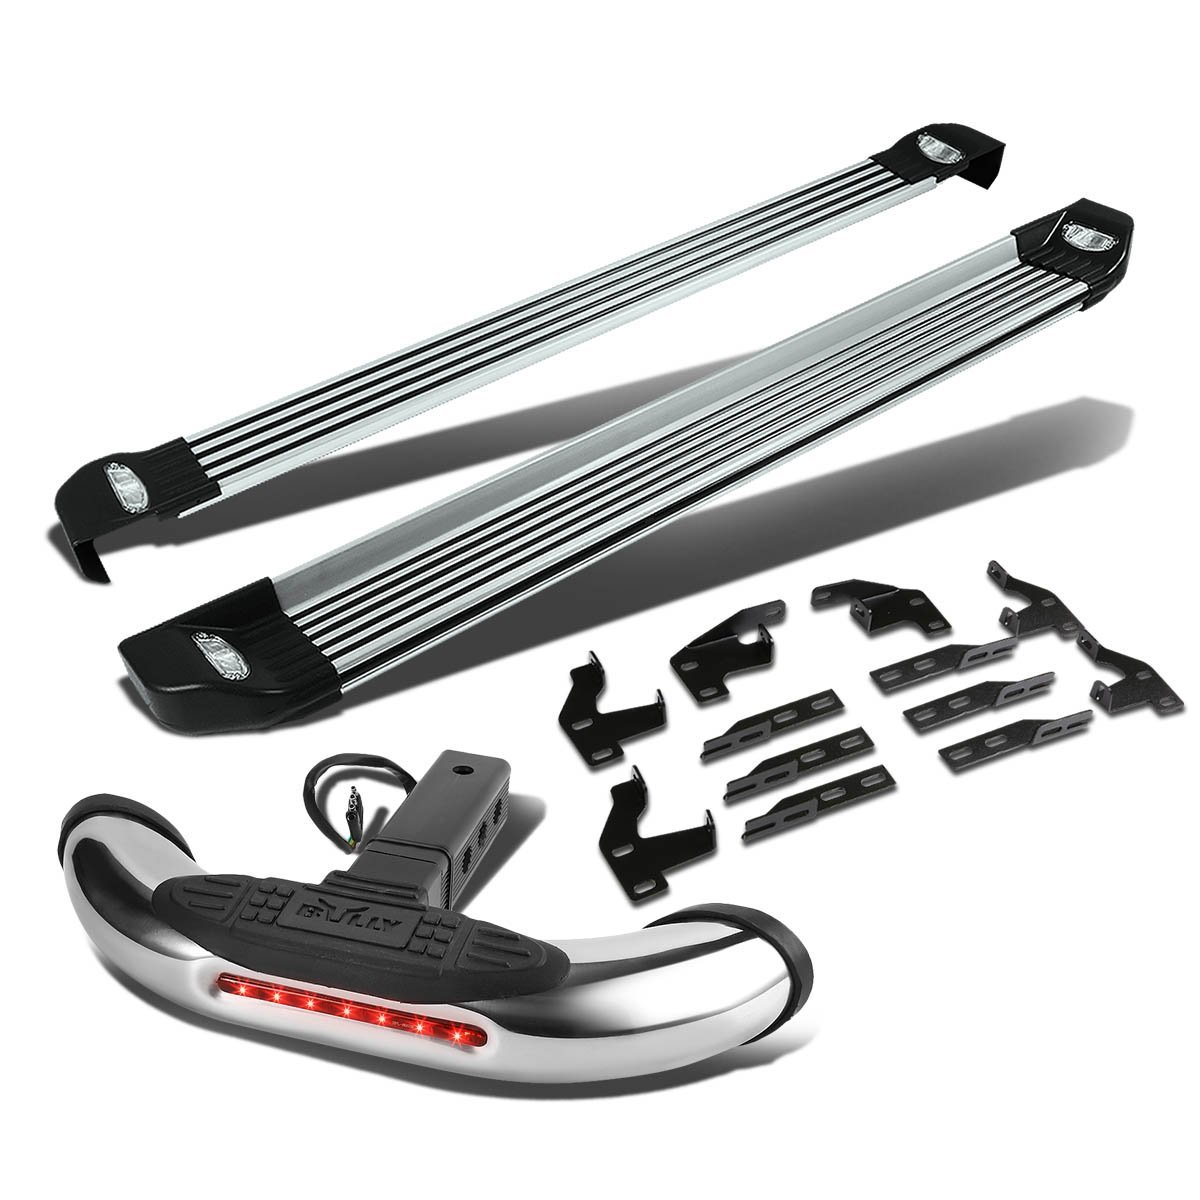 Cheap bully running boards find bully running boards deals on line get quotations honda pilot 2nd gen 525 side nerf step bar lighted running boardsbully cr aloadofball Images